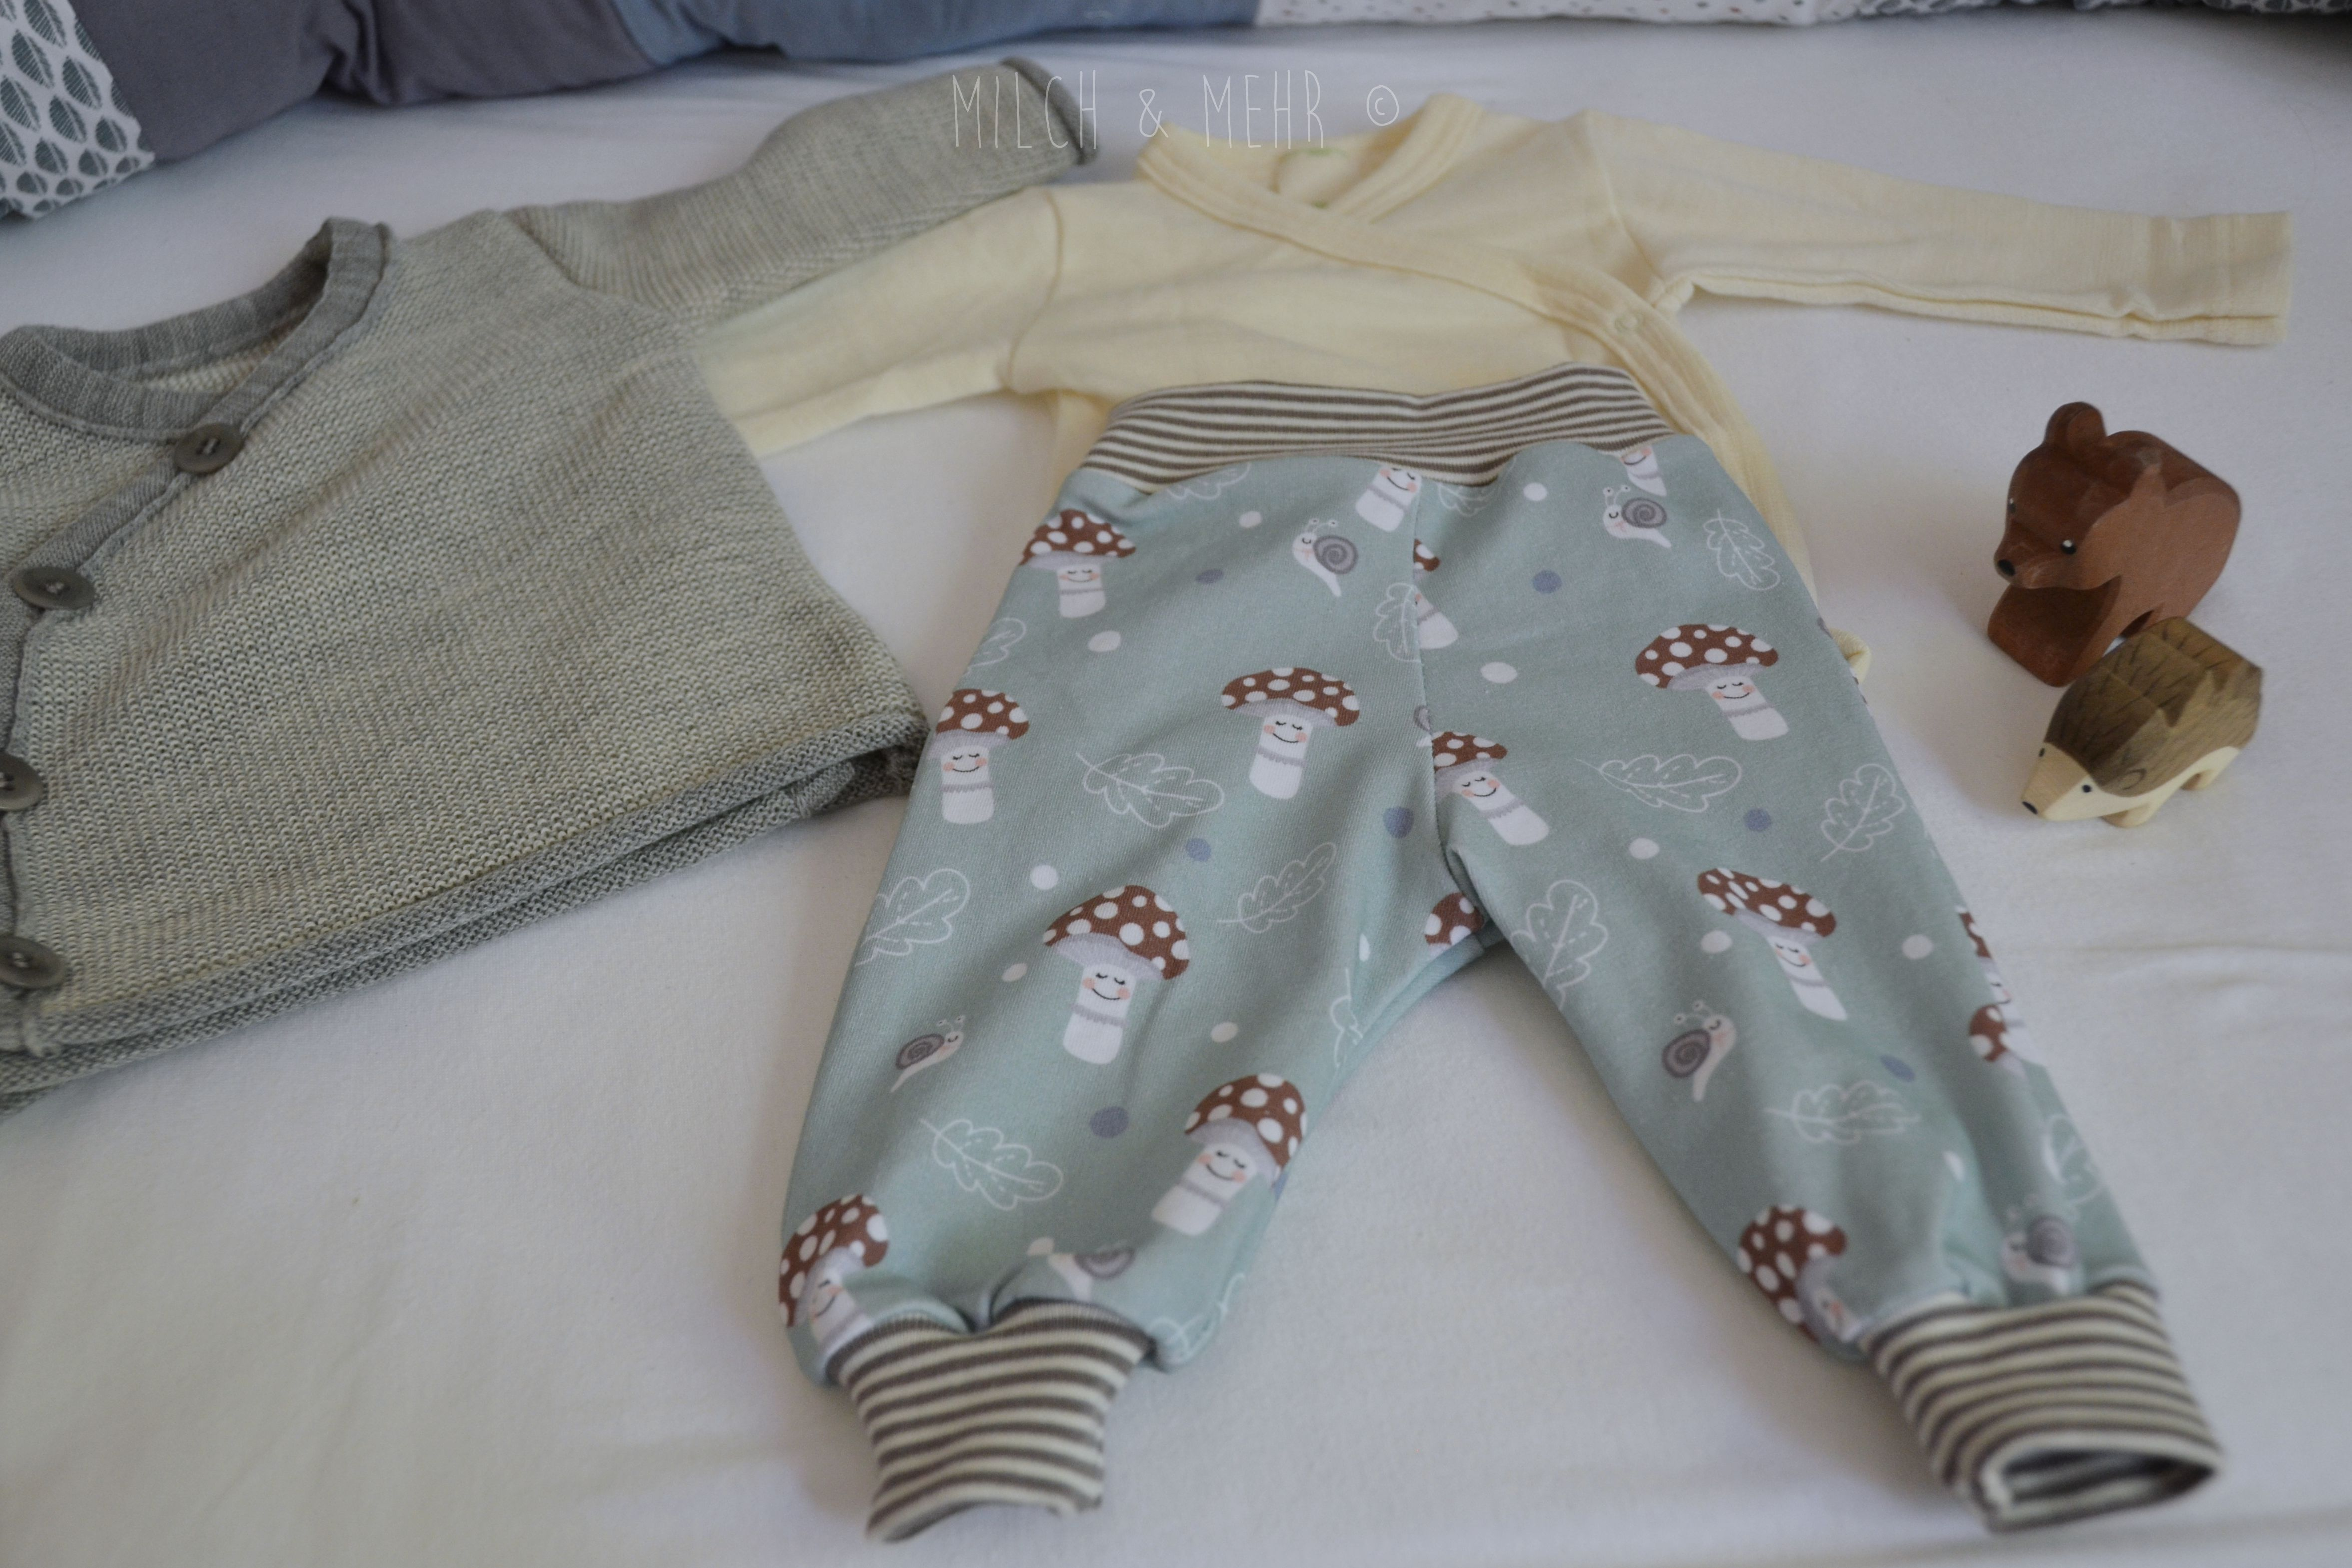 erstes Outfit fuer Herbstbaby Wolle Seide